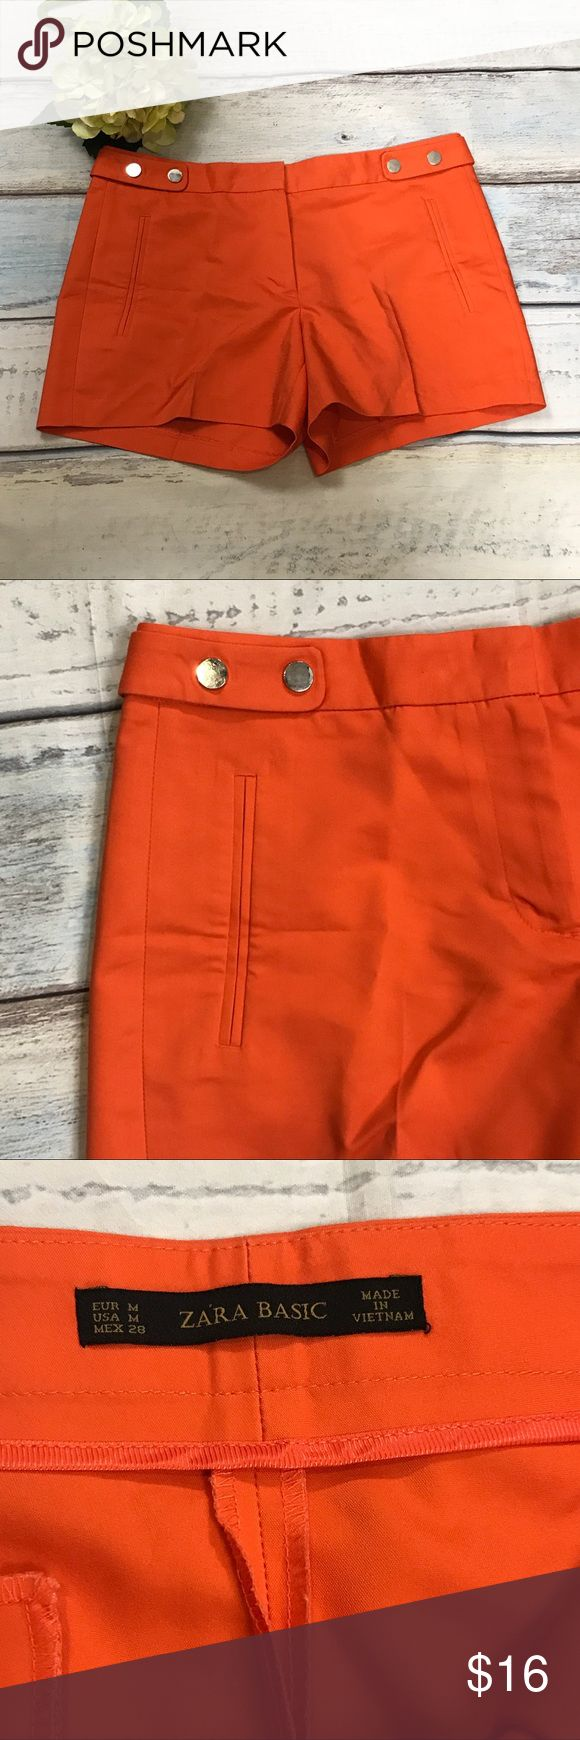 Zara Basic Sz M Orange Double Cloth shorts Zara Basic Womens Sz M Orange Double Cloth shorts Press Studs at Waist Mid Cargo  If there is one season you can go crazy with vibrant colors, it's summer. These vivid orange shorts are so much more fun than a regular khaki pair.  Features: - 2 front slant pockets - double cloth - pressed studs at waist - zip front with hook eye and button closure - 1 faux rear pocket - flat front - slight stretch  Condition: tags have been removed  Approximate…